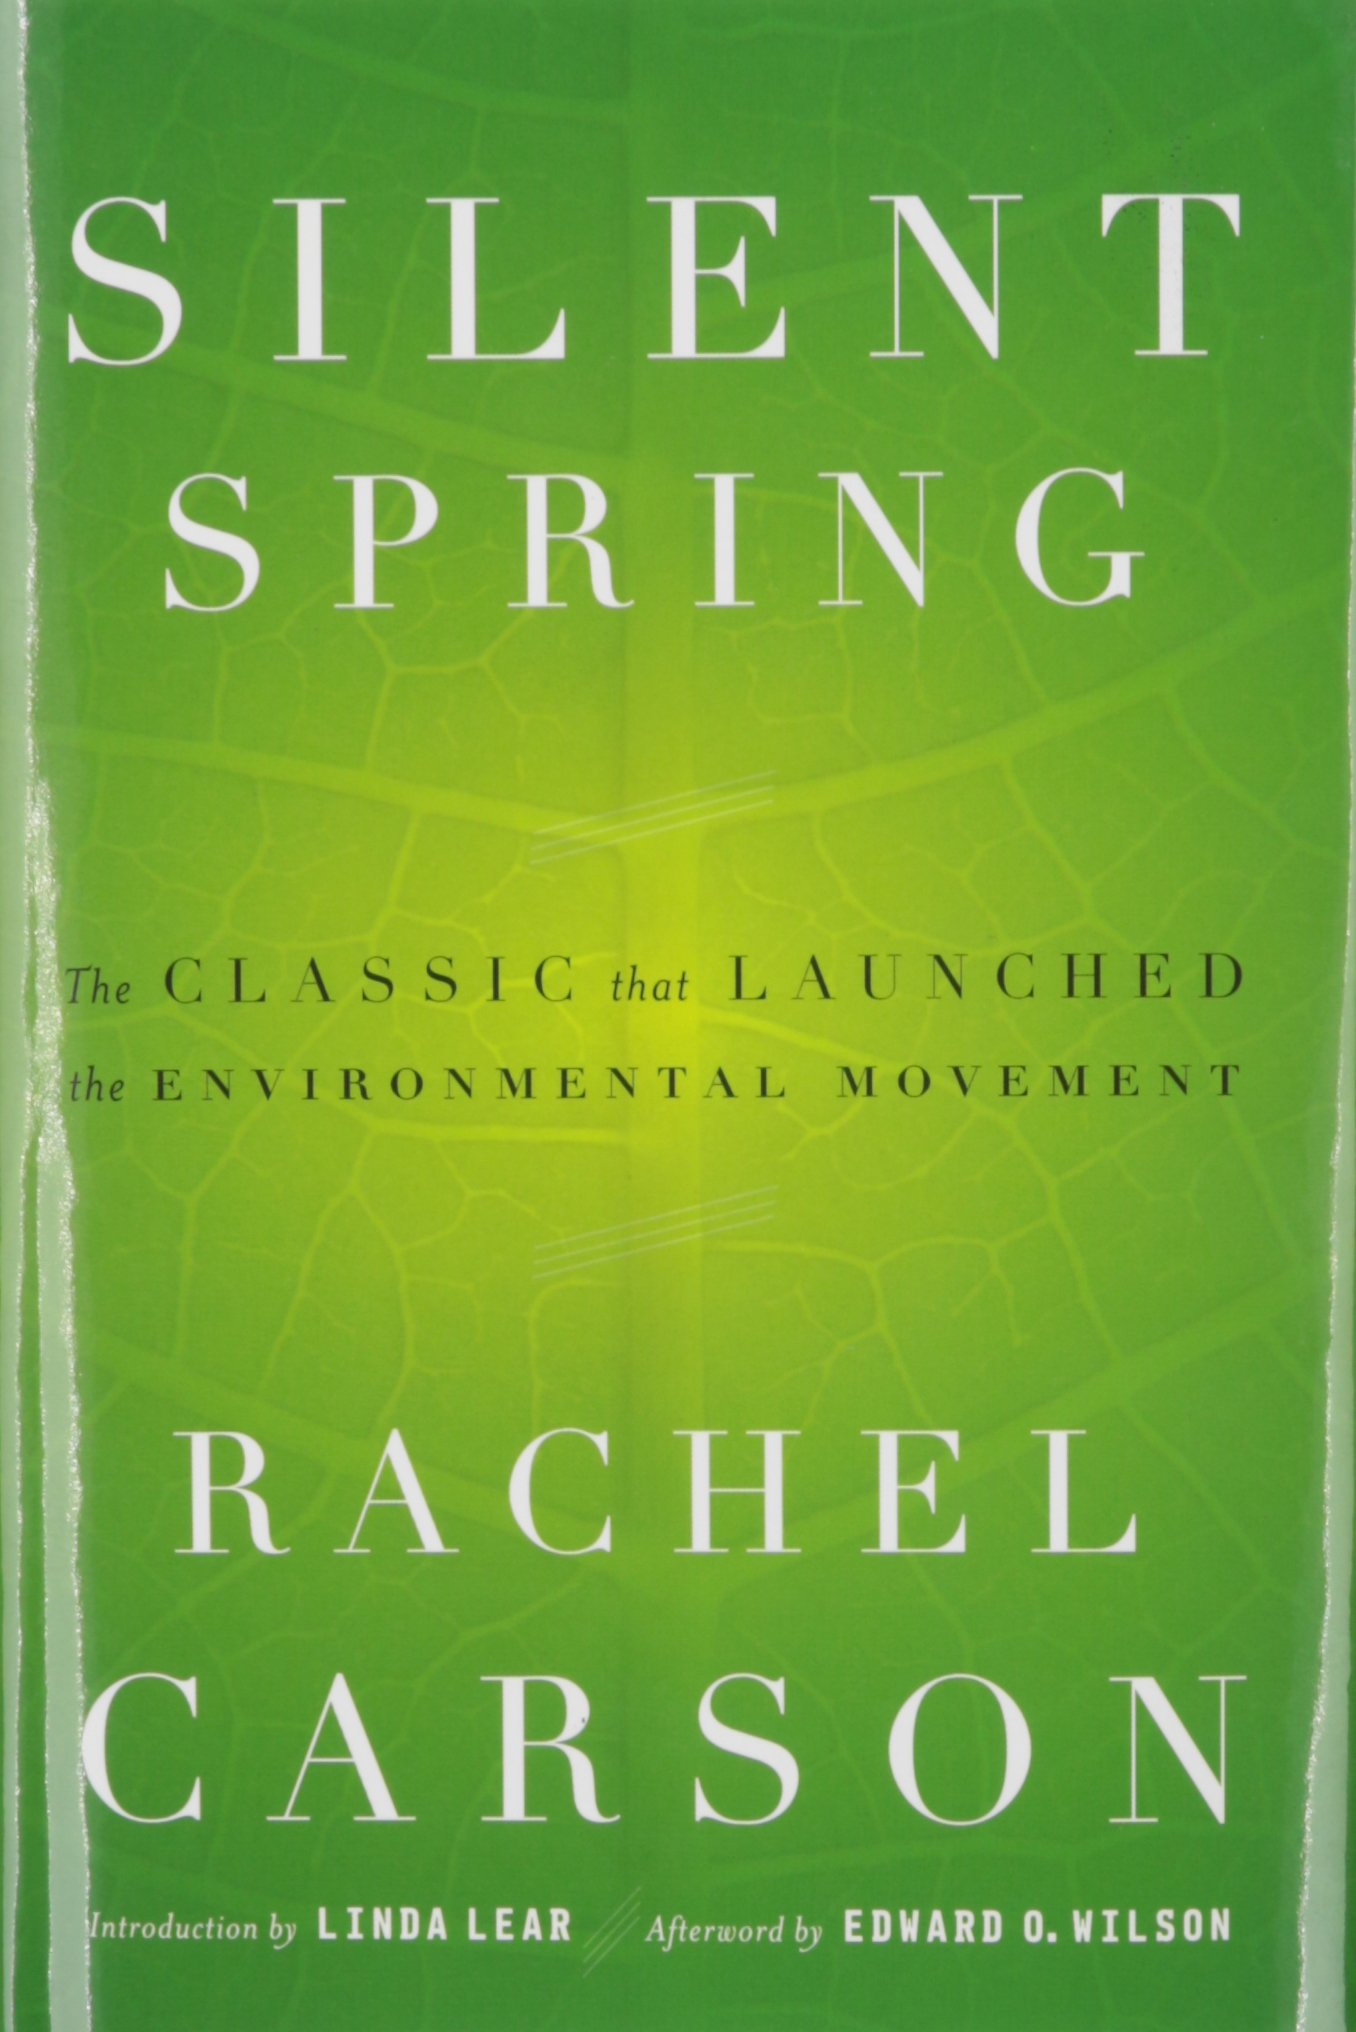 silent spring rachel carson essay Rachel carson's controversial book, silent spring, mobilized people the world over—and in a way no other comparable work of twentieth century nonfiction had besides raising our consciousness about ecology and launching the modern environmentalist movement, carson's sobering exposé of the pesticide industry's campaign of disinformation .